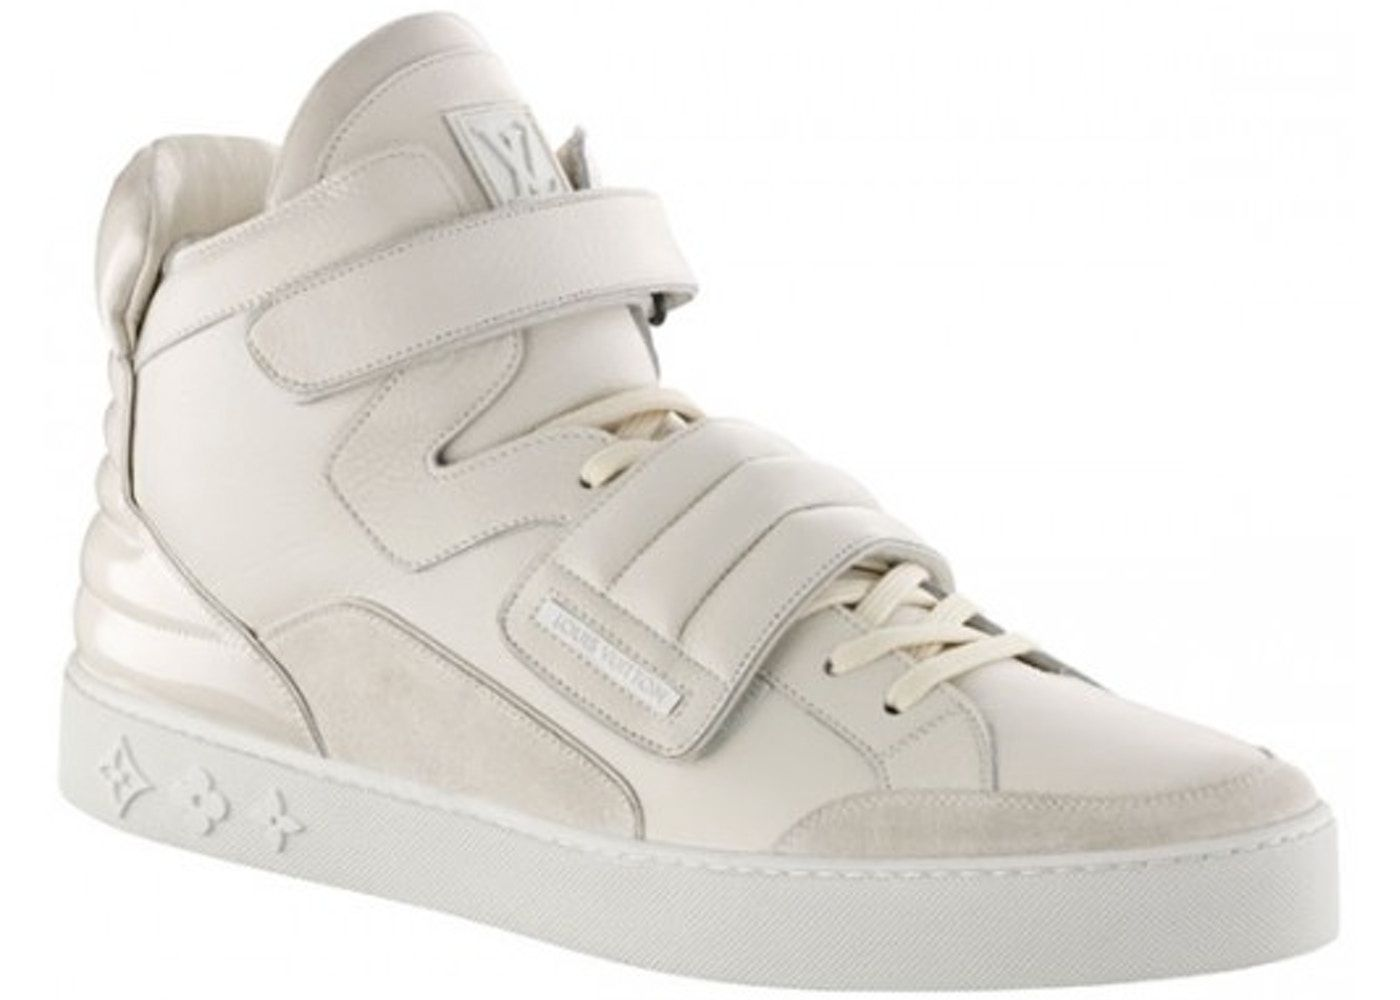 Check Out The Louis Vuitton Jaspers Kanye Cream Available On Stockx Louis Vuitton Shoes Sneakers Louis Vuitton Sneakers Louis Vuitton Sneaker